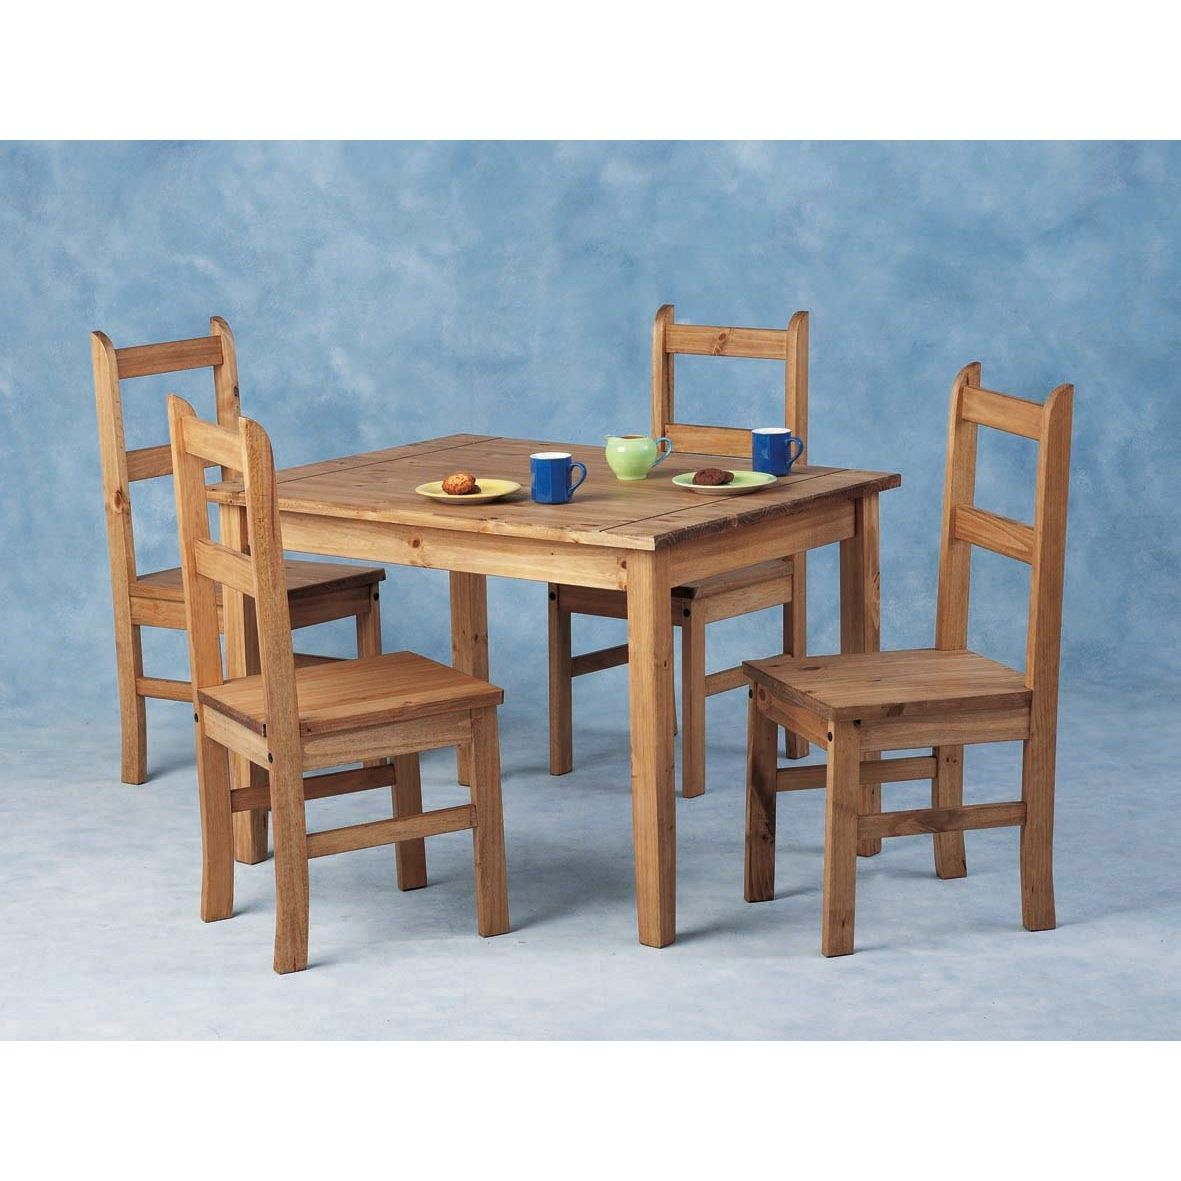 Rustic dining set http://www.variety.co.uk/home-zone-budget-mexican ...